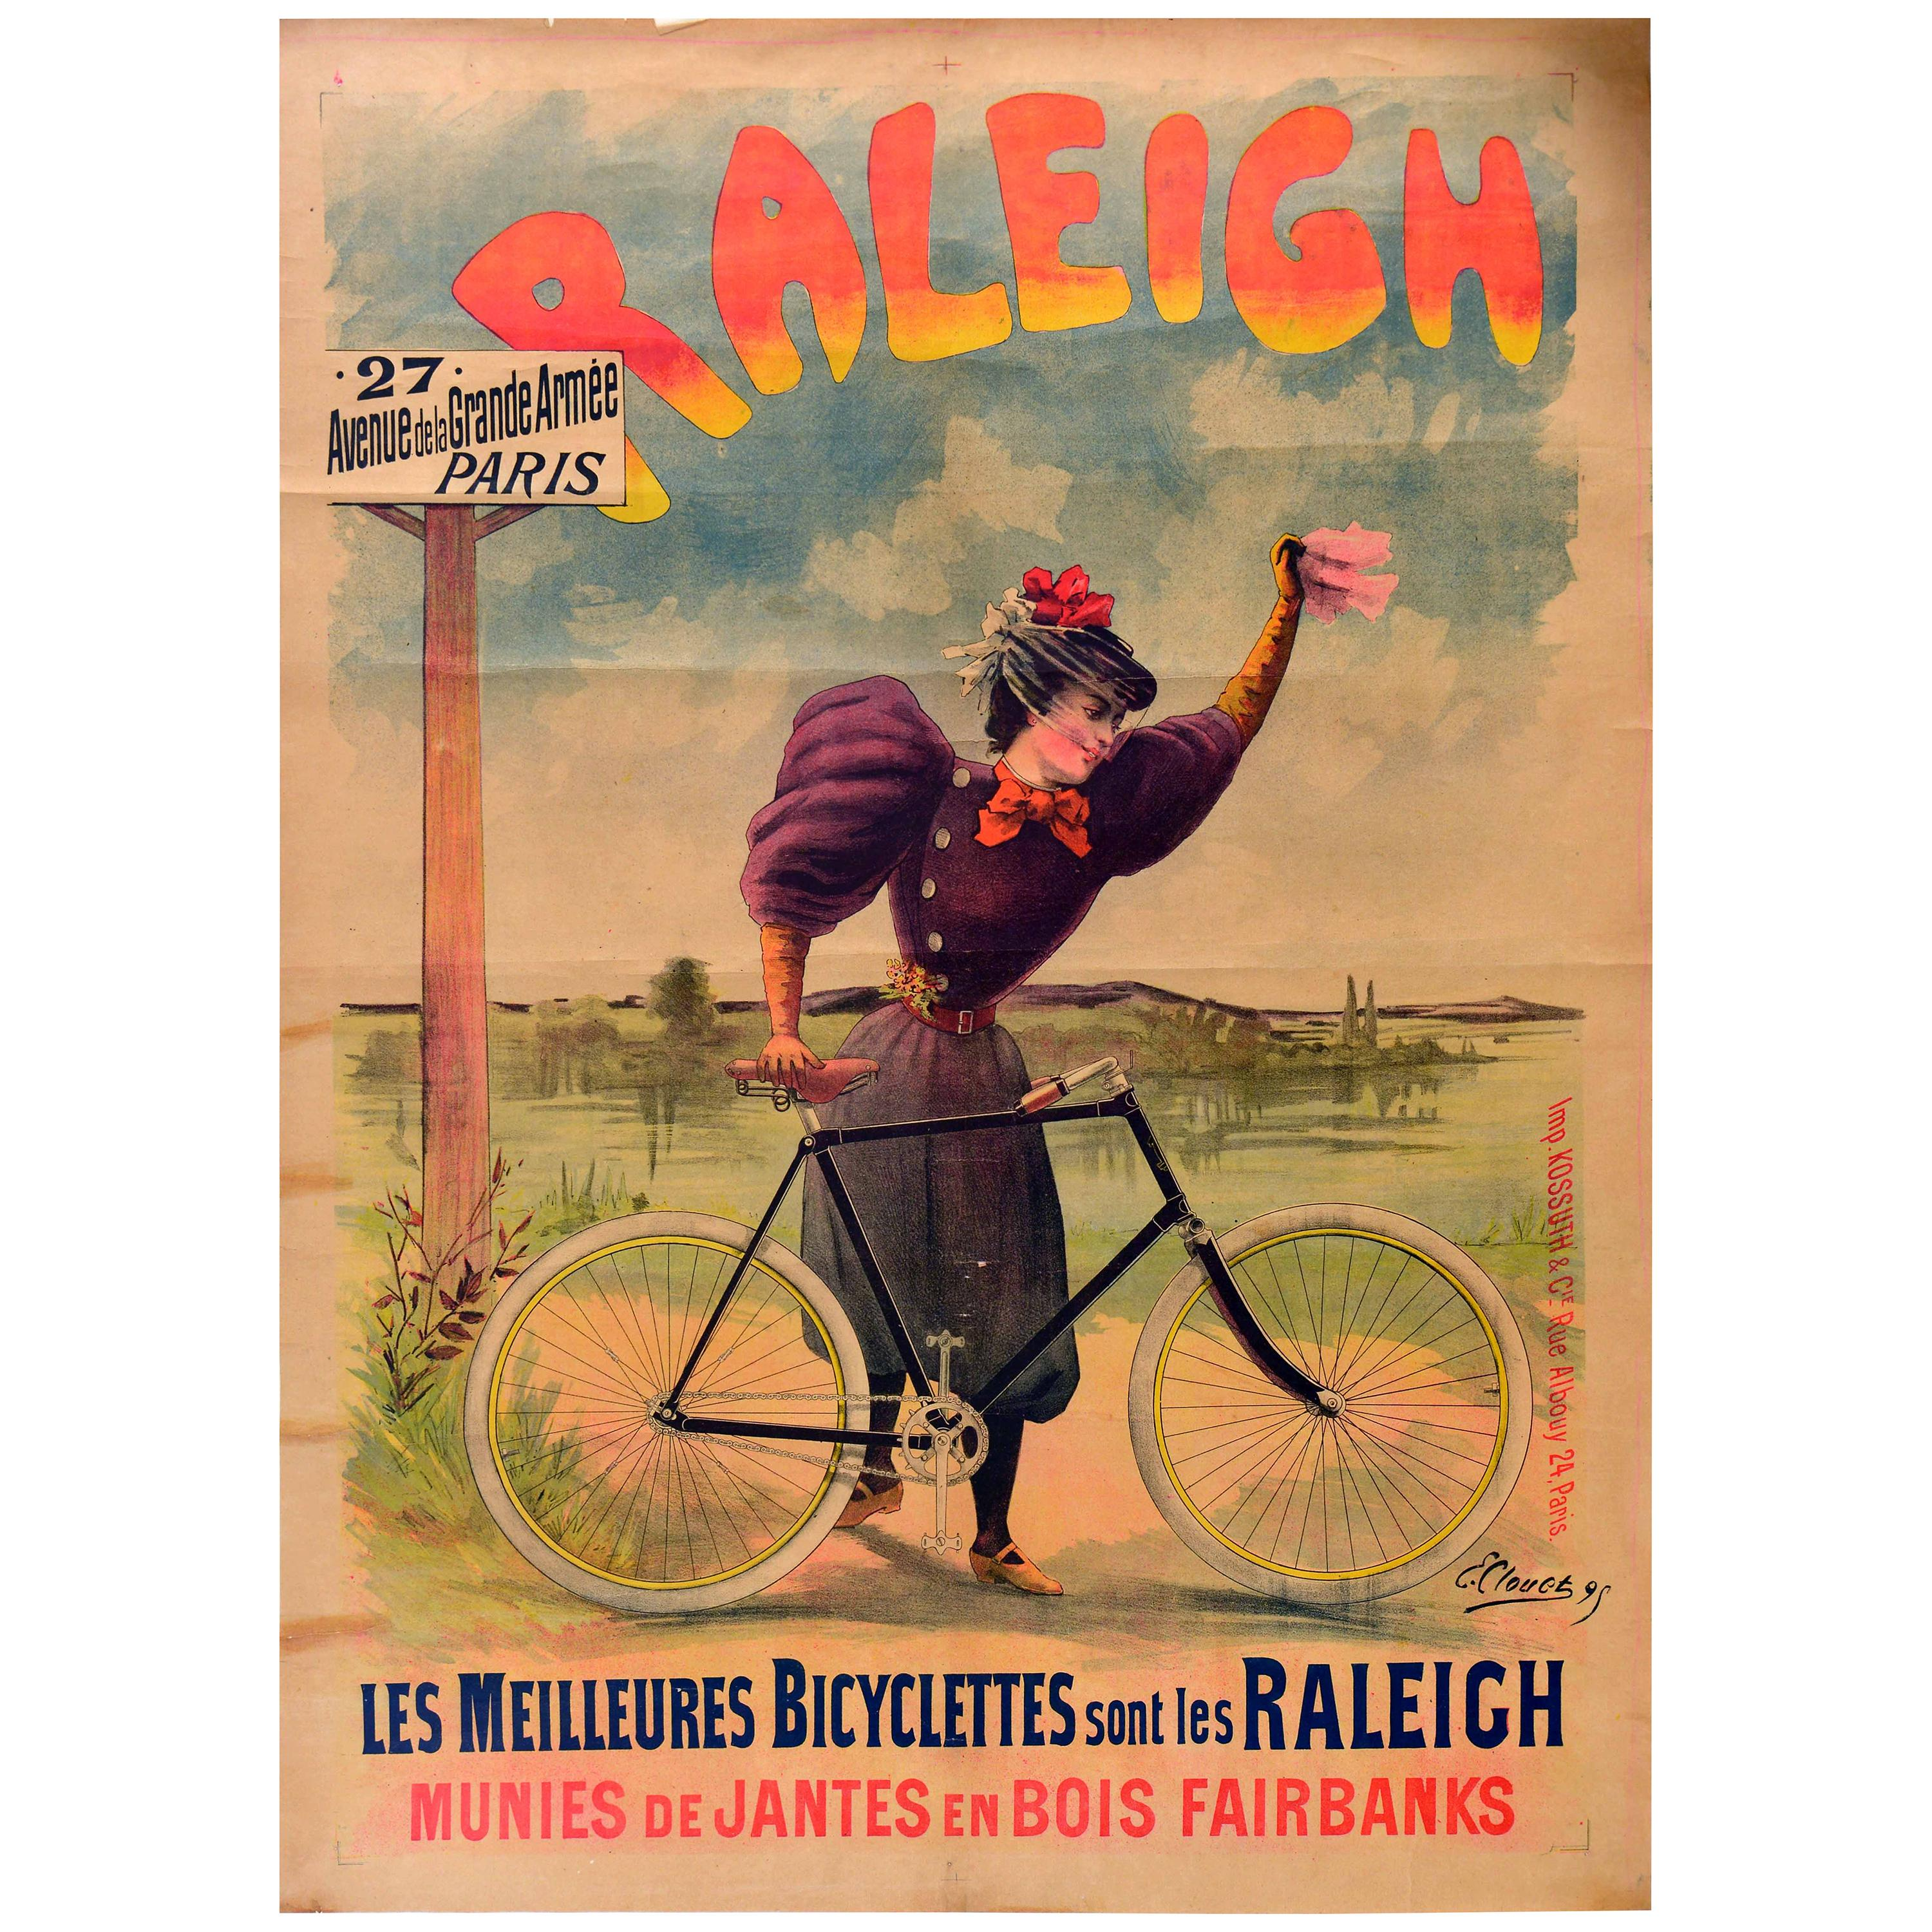 Original Antique Poster Raleigh Bicycles Meilleures Bicyclettes Cycles Bike Art